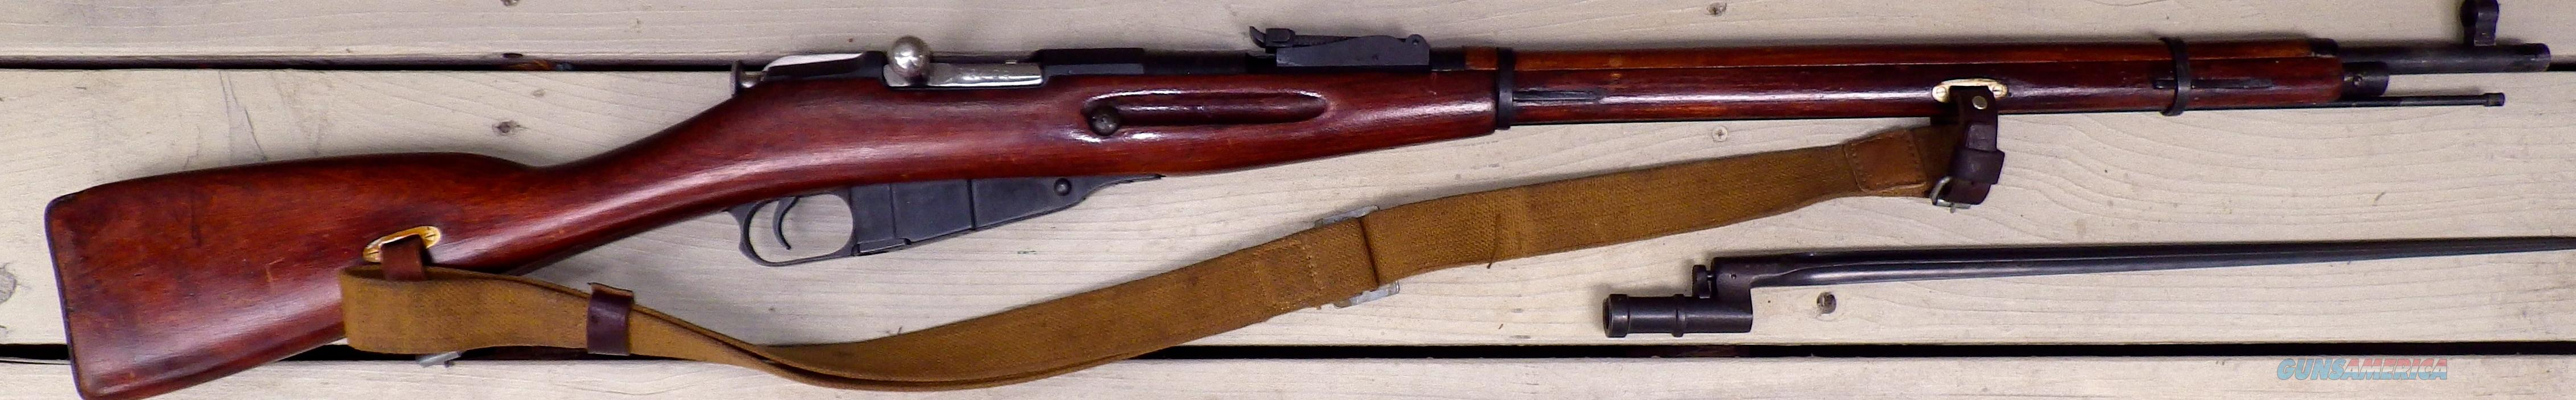 Russian M91/30, octagon receiver, straight grip, bayonet,   Guns > Rifles > Military Misc. Rifles Non-US > Other